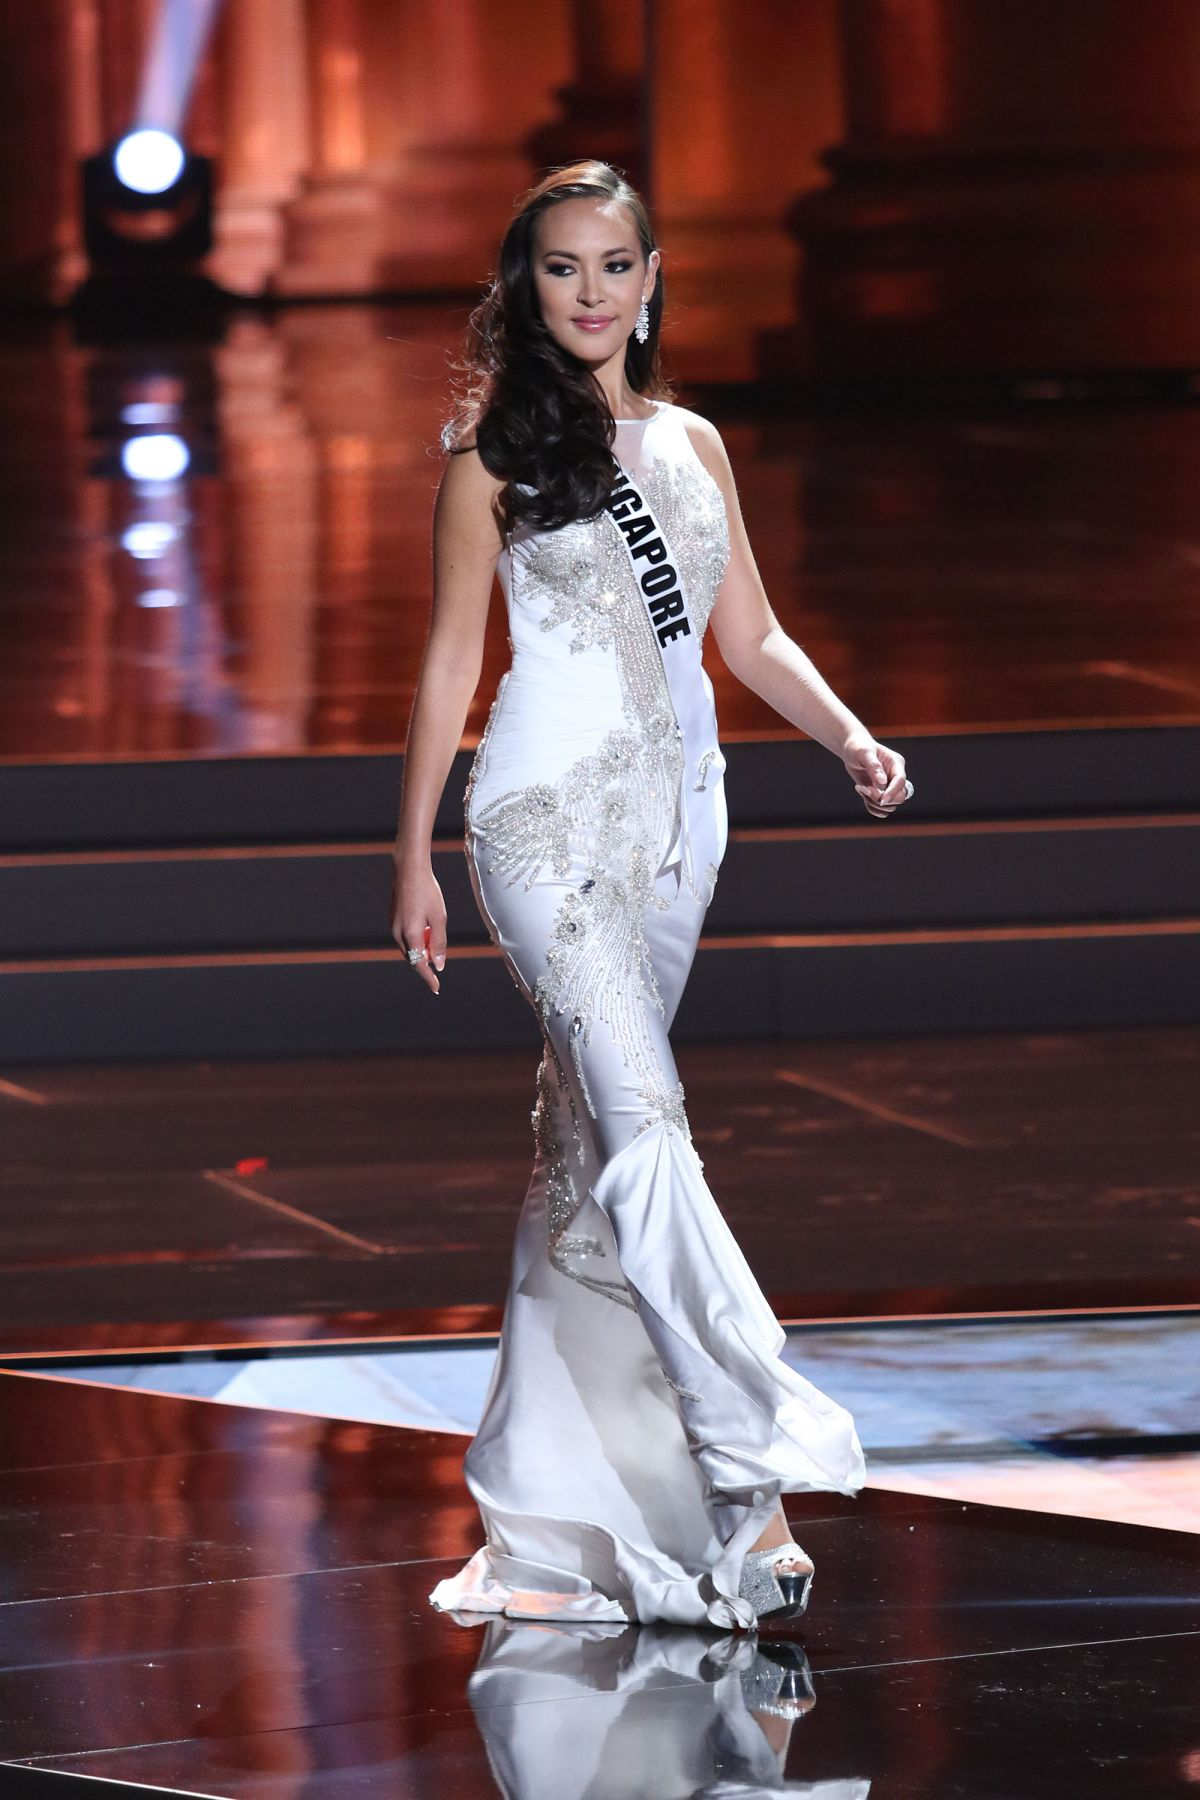 LISA MARIE WHITE - Miss Universe 2015 Preliminary Round 12/16/2015